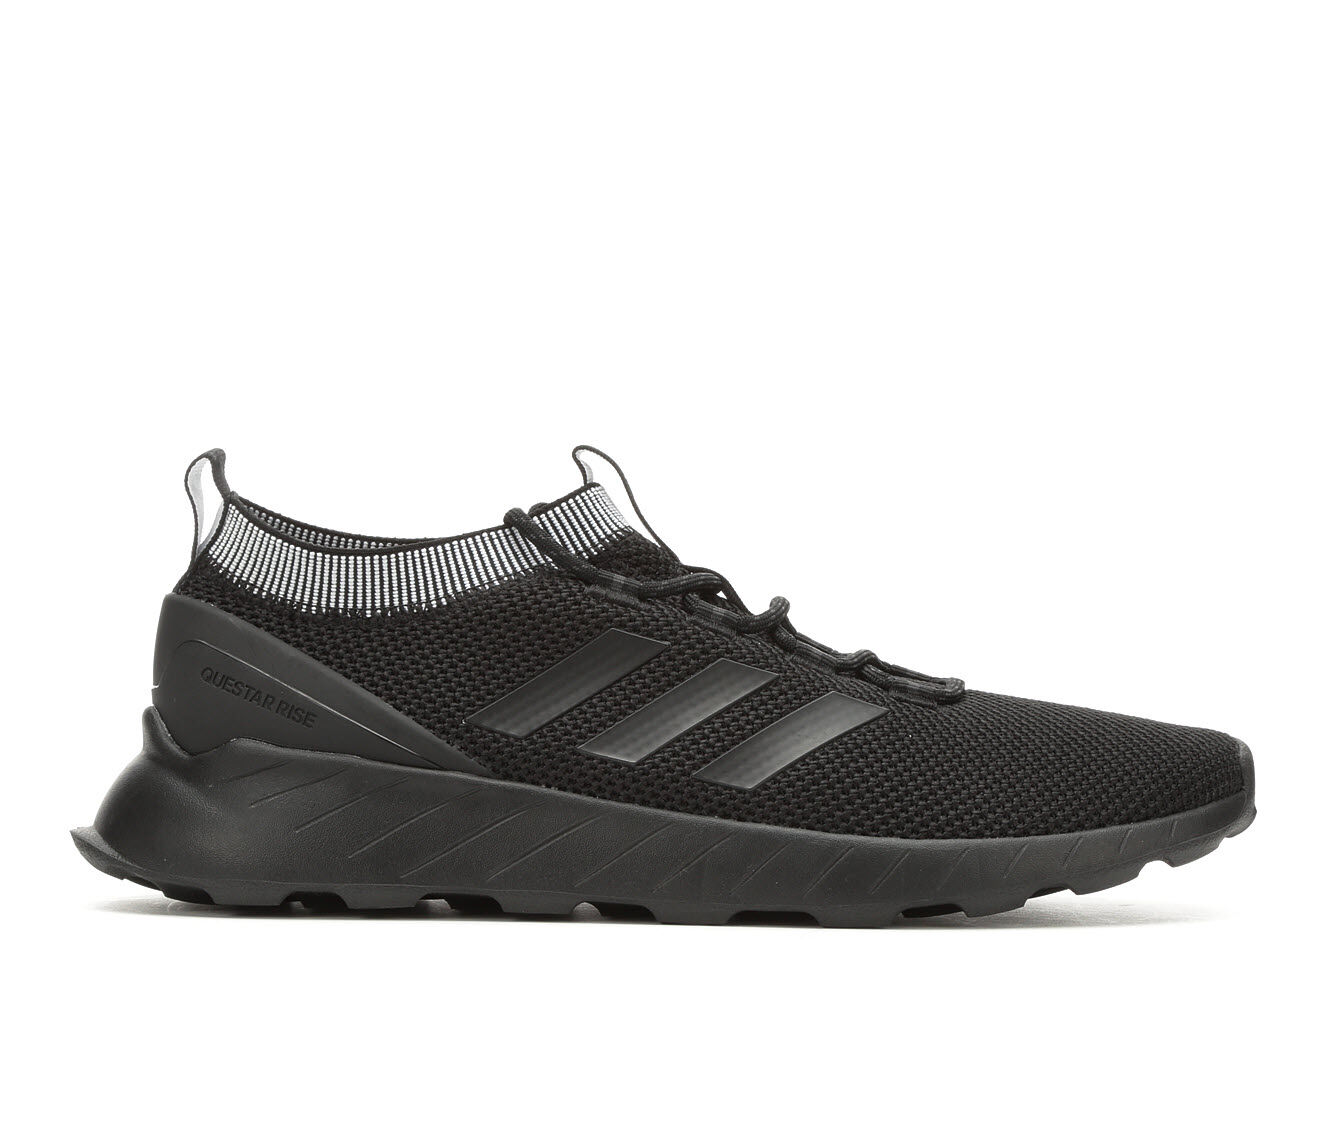 Men's Adidas Questar Rise Running Shoes Blk/Blk/Gry